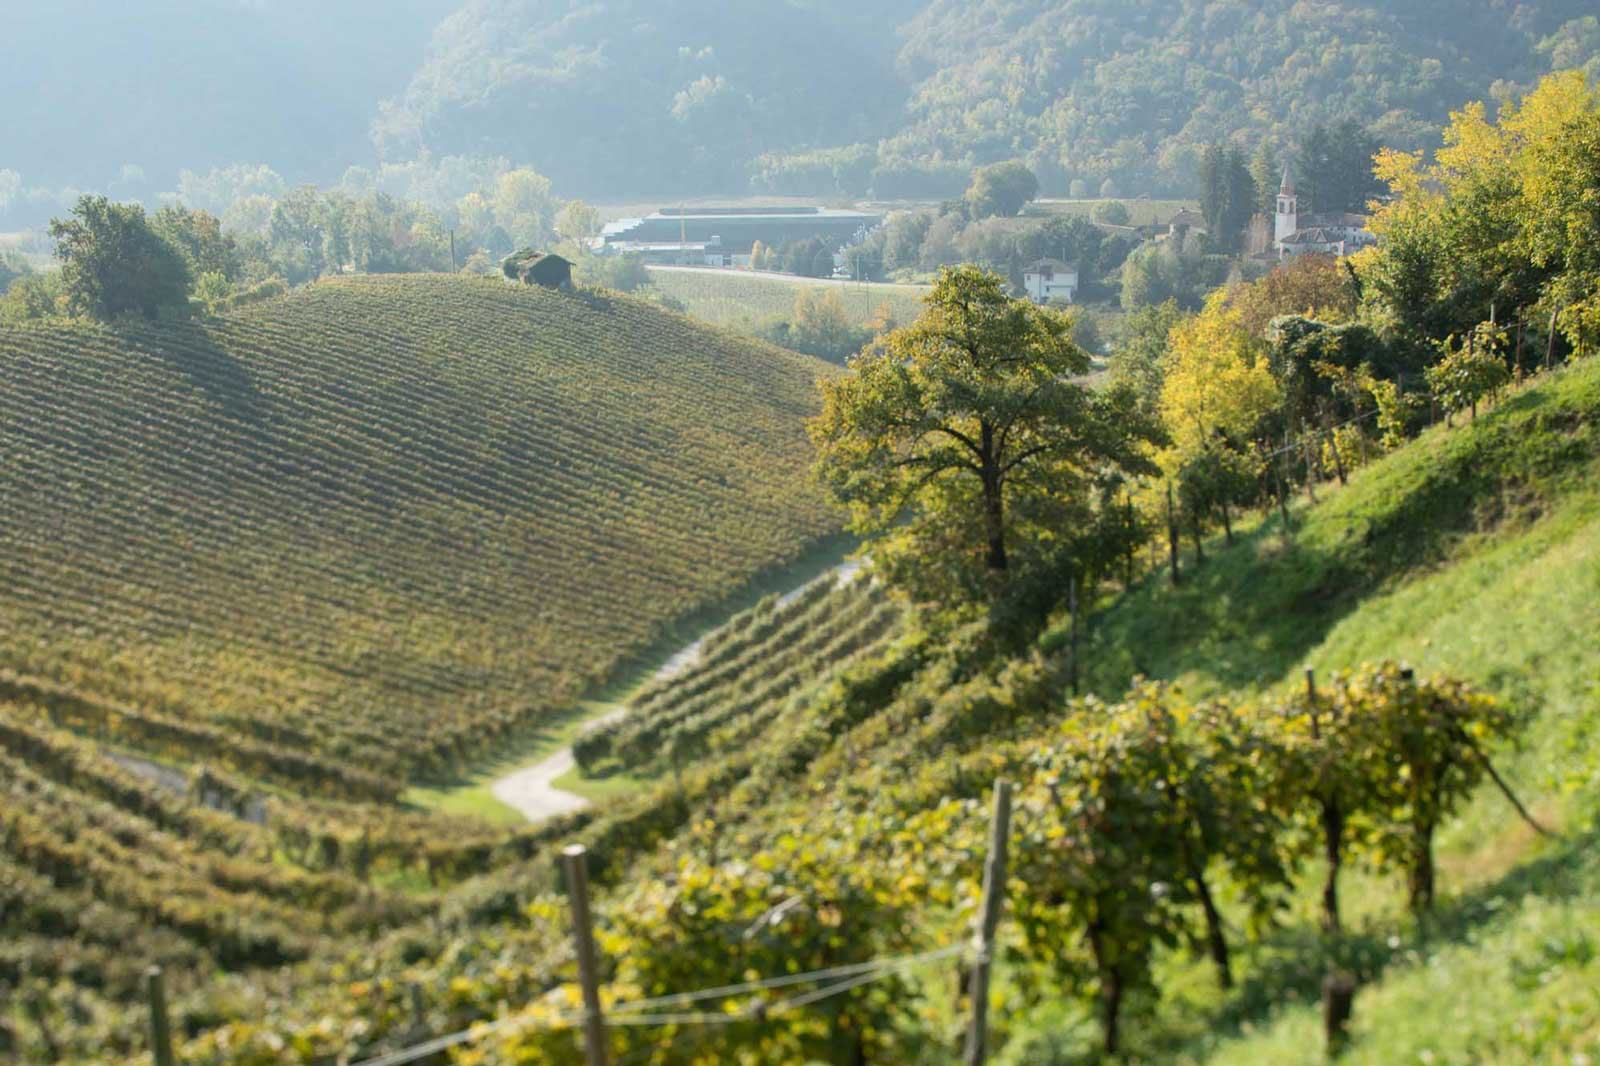 A view over the Rive di Campea near Valdobbiadene, Italy. ©Kevin Day/Opening a Bottle